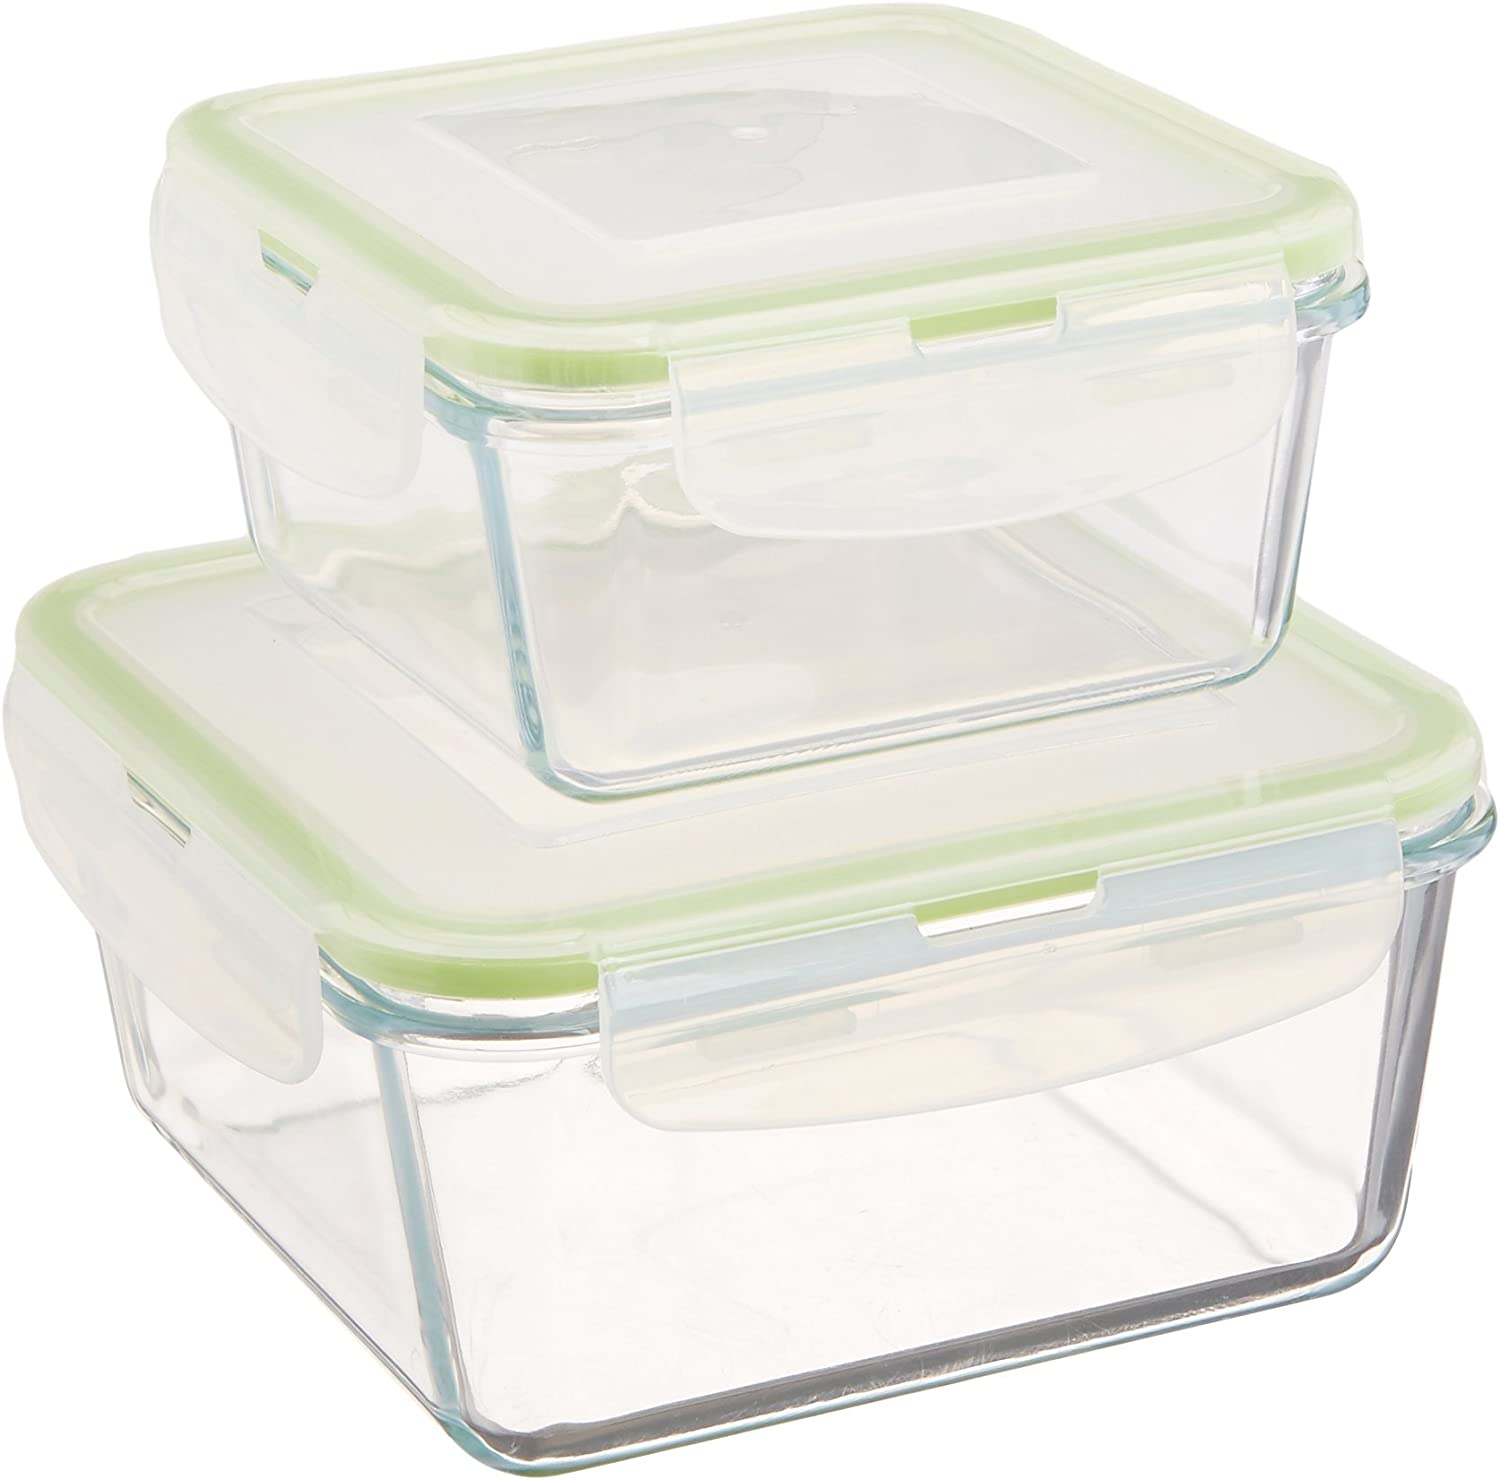 Uniware 2 Pc Square Microwave/oven Safe Air Tight Glass Food Storage 500ml and 1000ml [B4202-2]